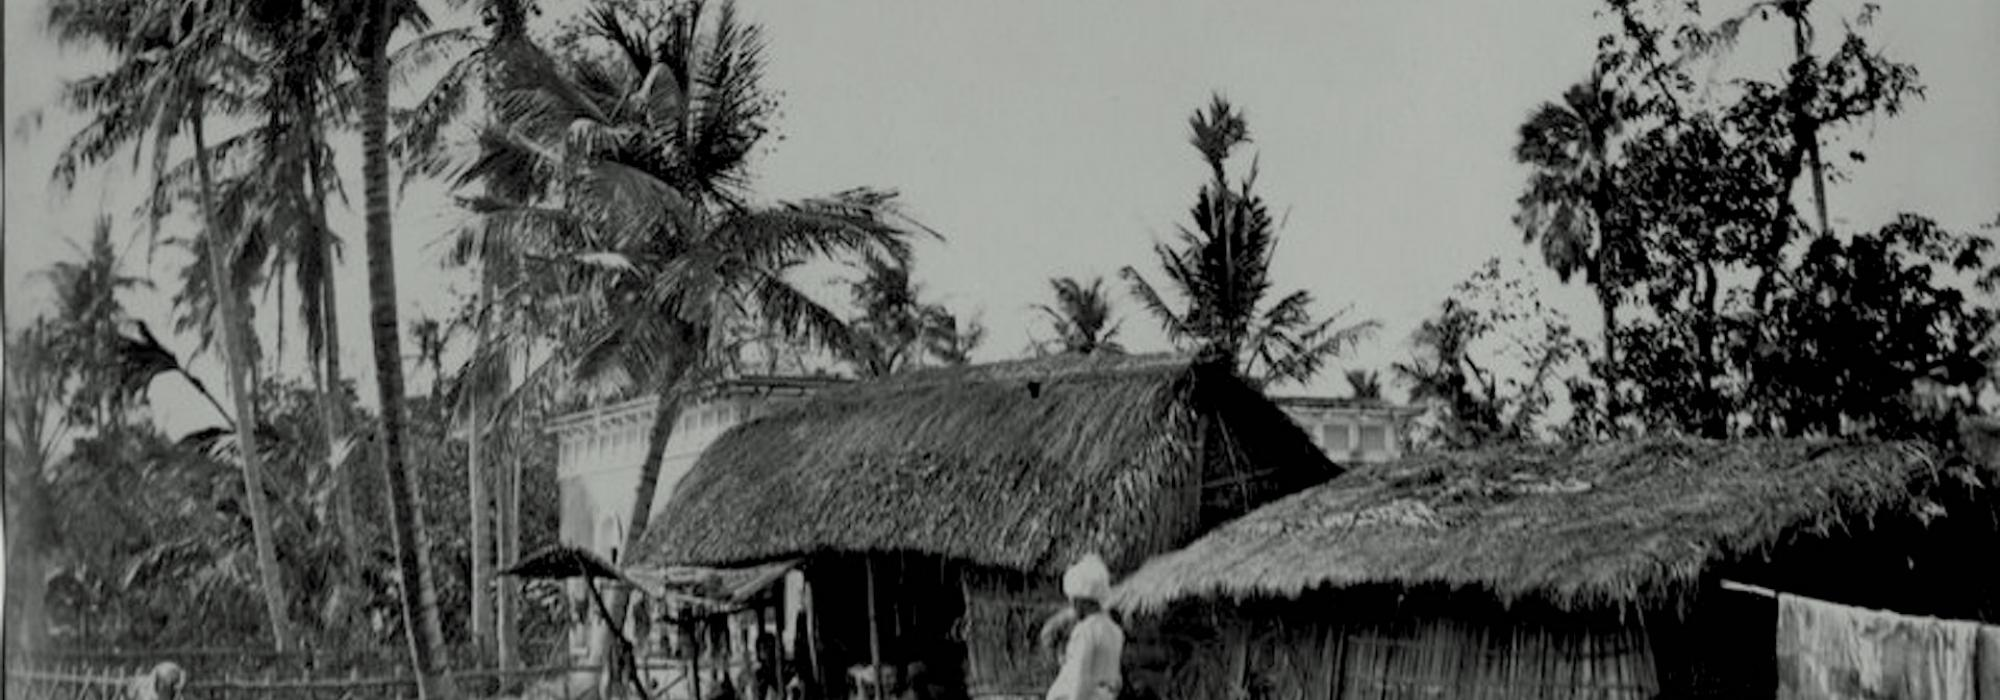 Old Indian Village